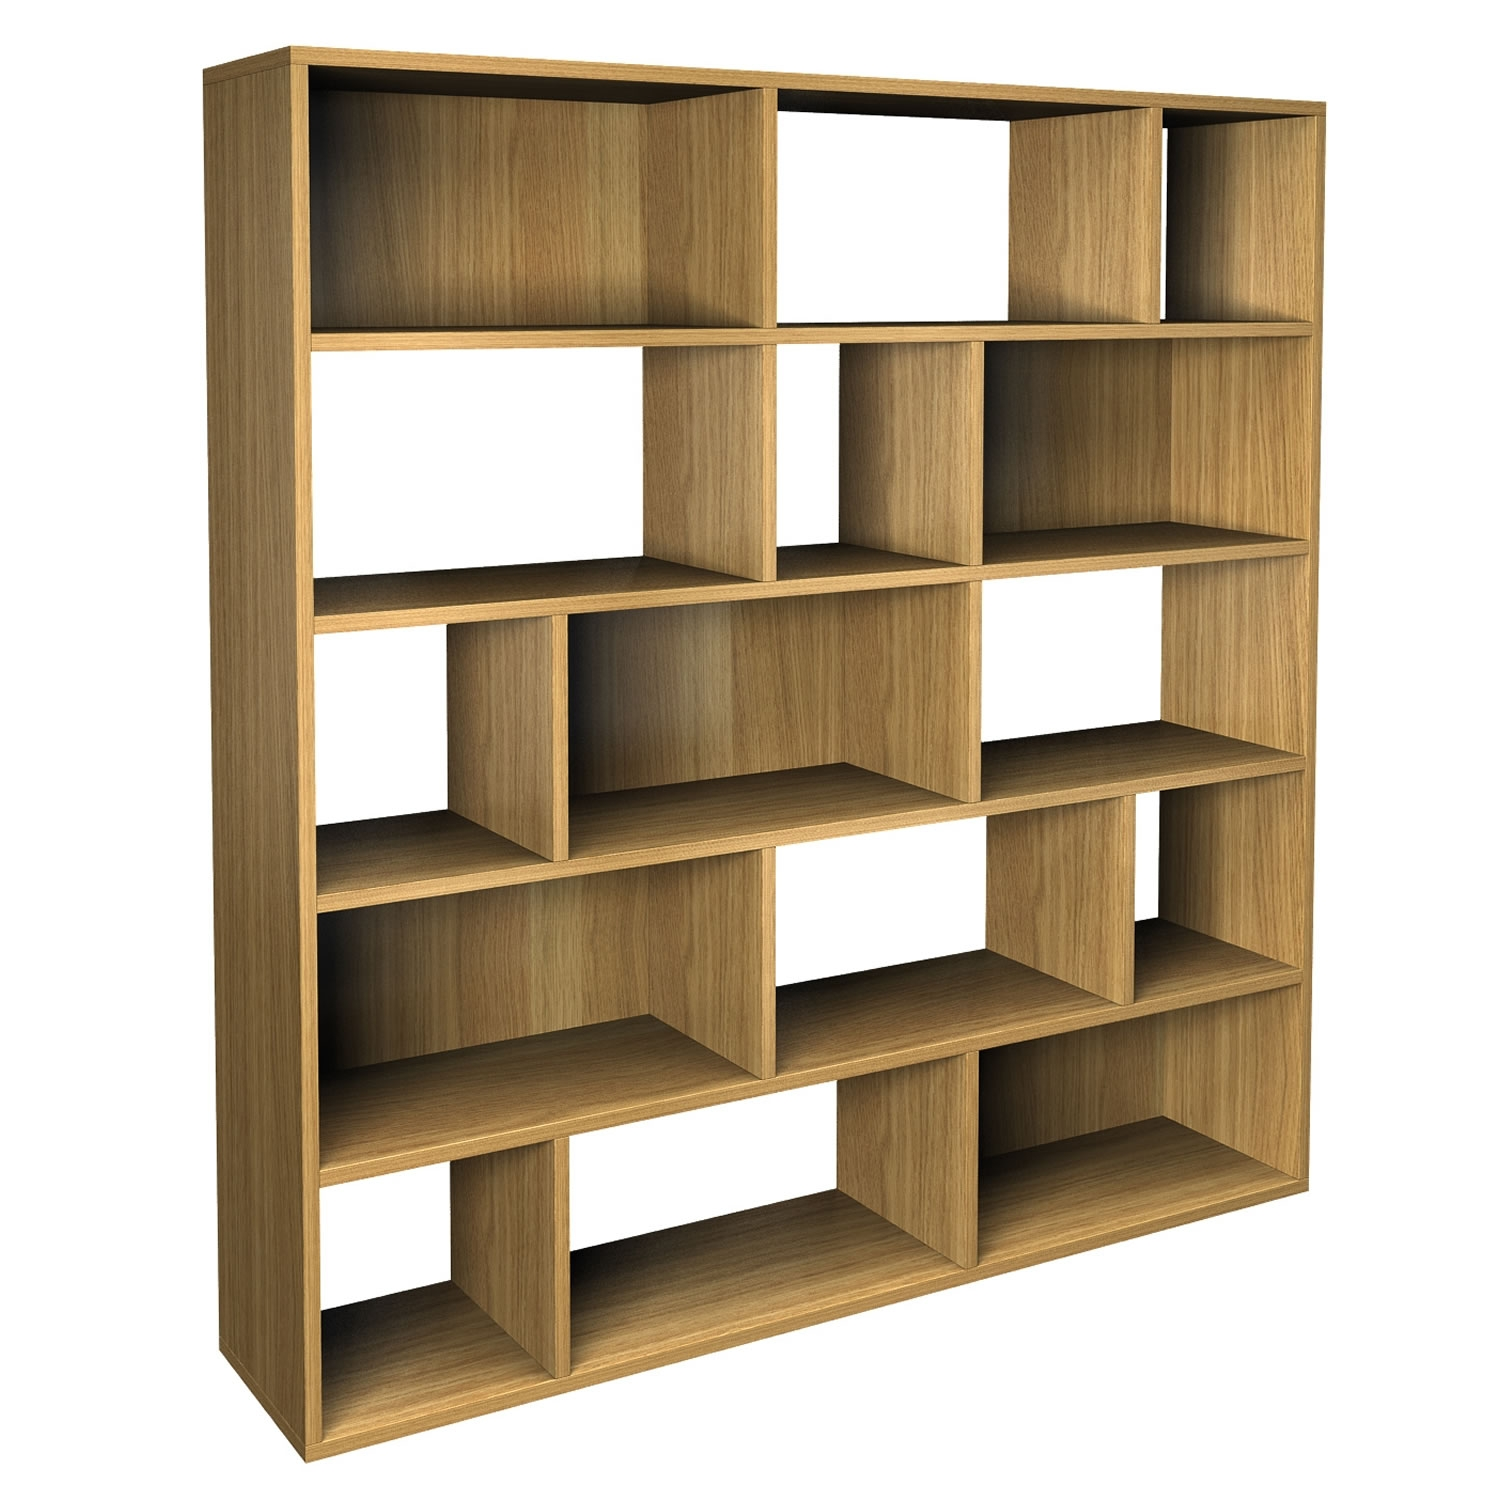 Furniture Simple Stylish Designs Pictures Of Creative Bookshelf With Regard To Bookshelves Designs For Home (View 9 of 15)